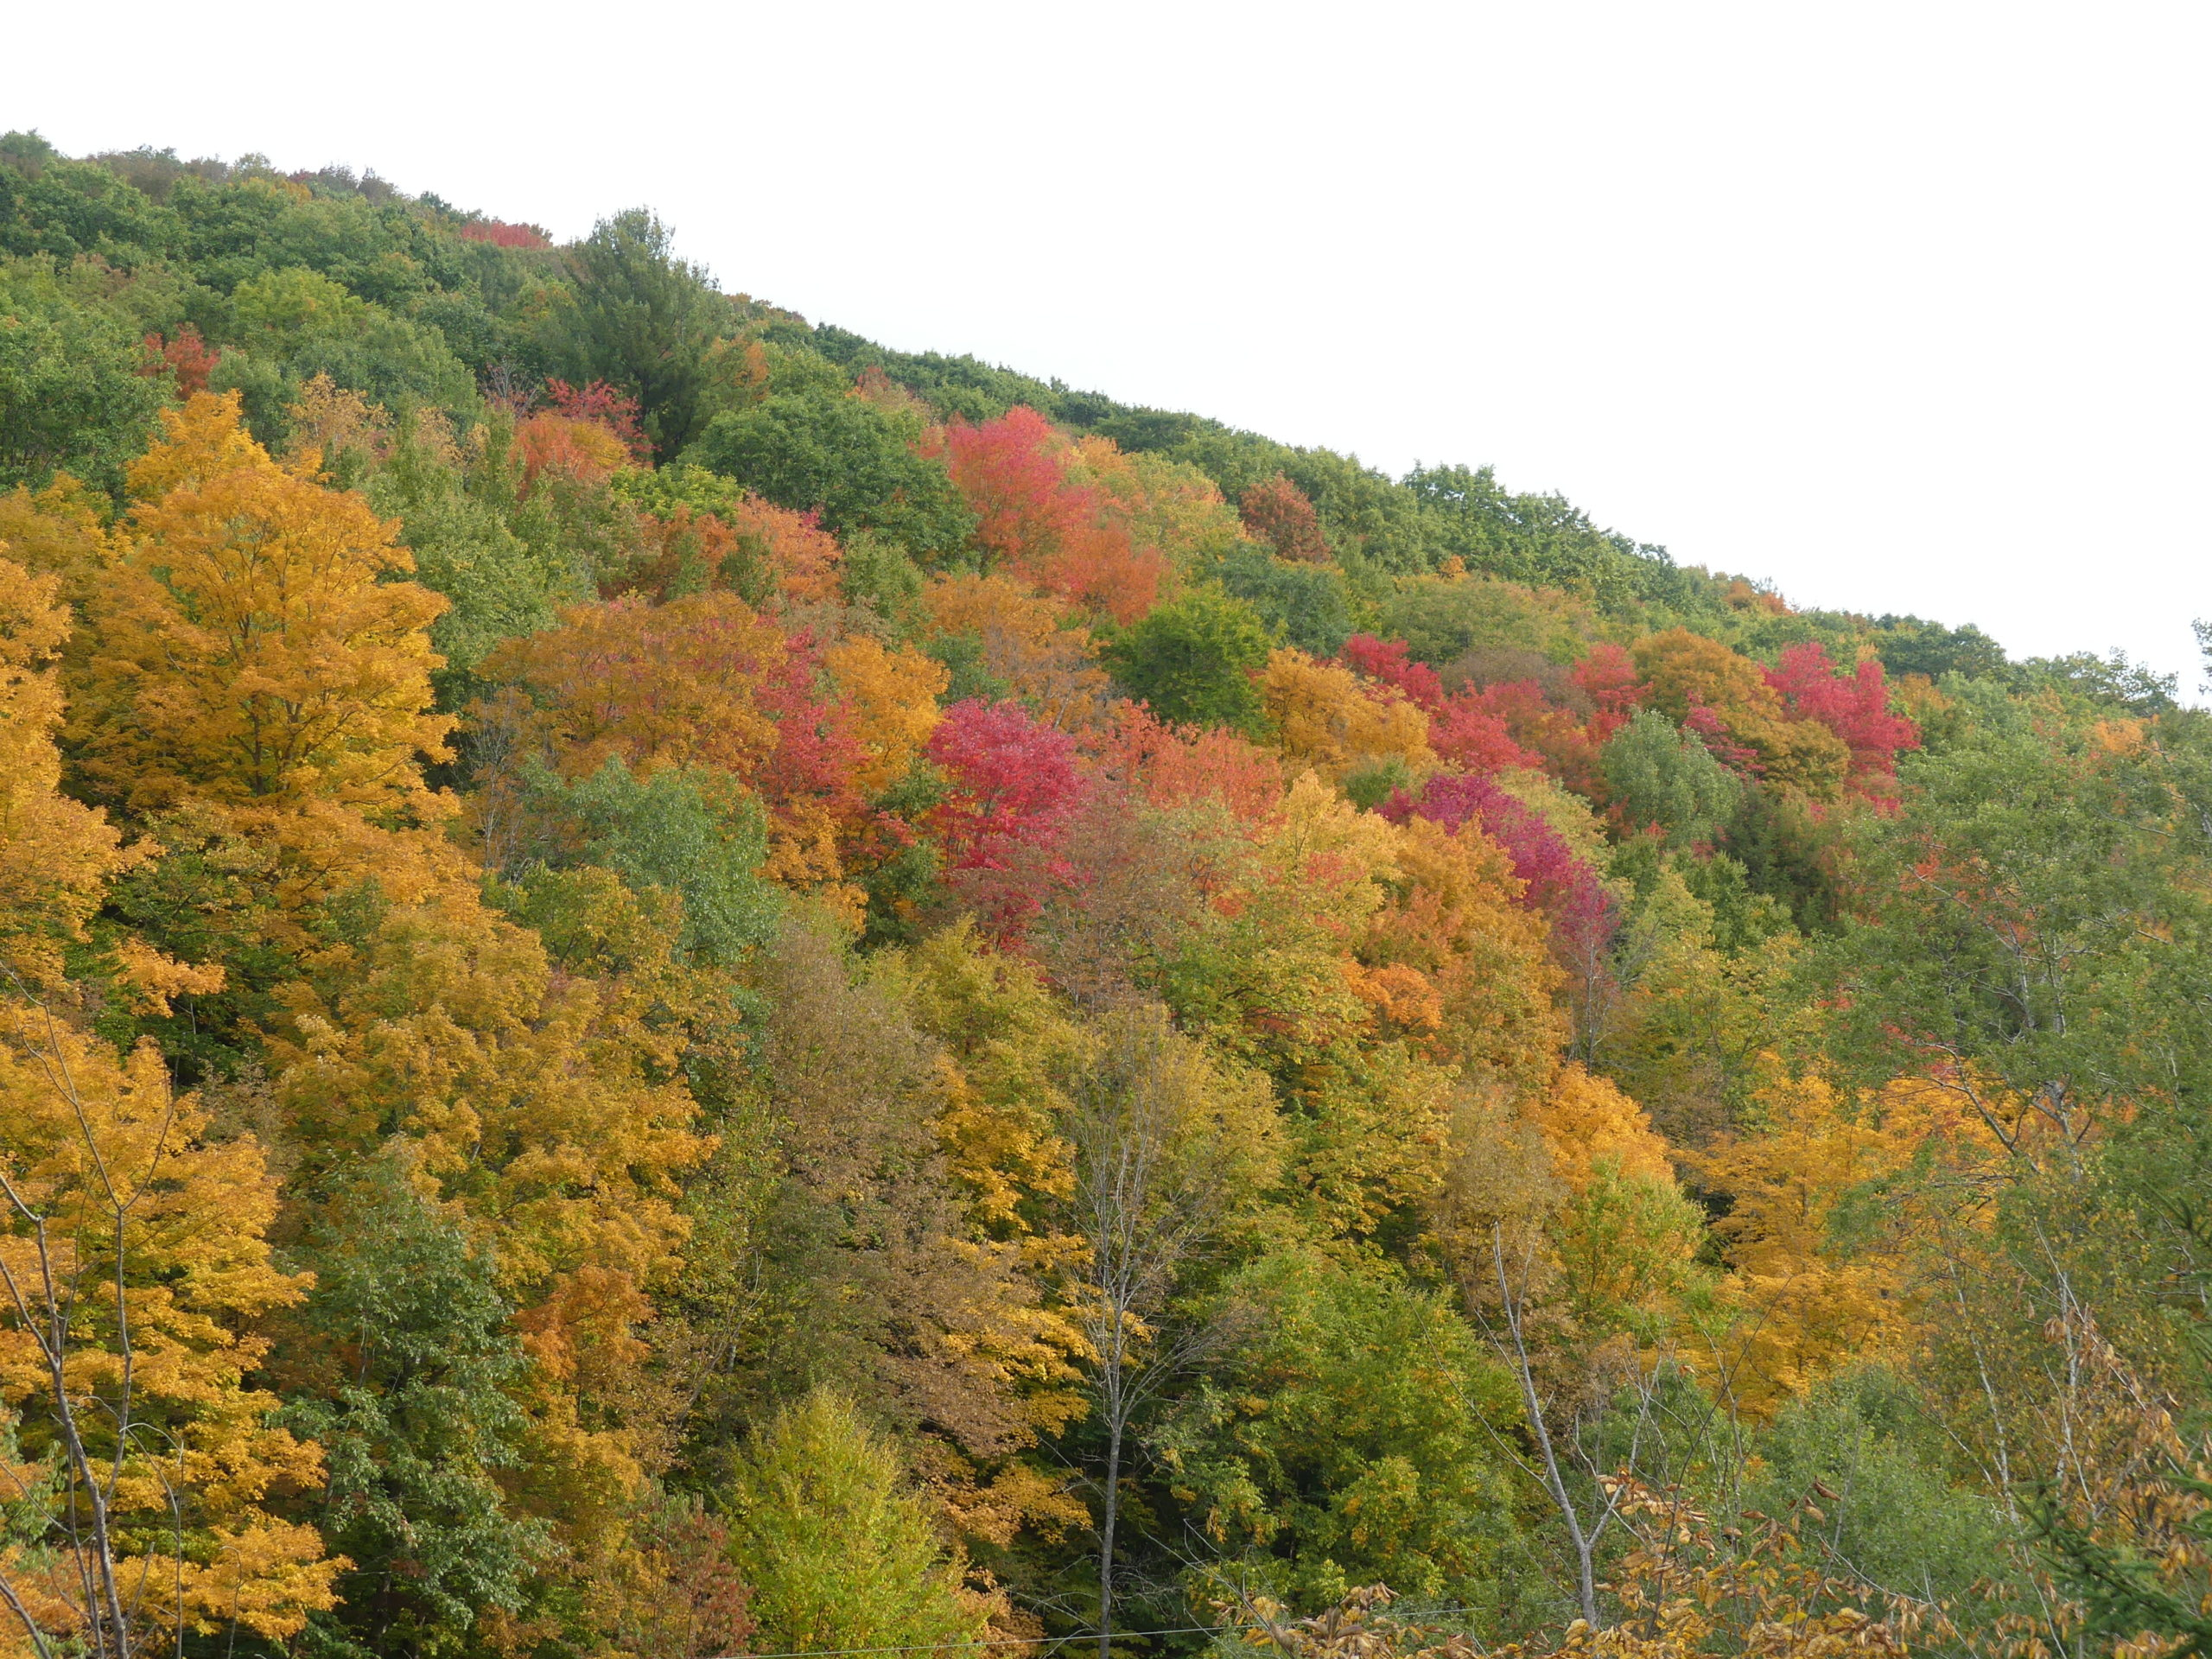 Fall colors showing up in the central Catskills last weekend. This is the weekend to get out and travel north and west to see the magnificent oranges, reds and yellows because in a week the colors will dull north of Dutchess and Orange counties.